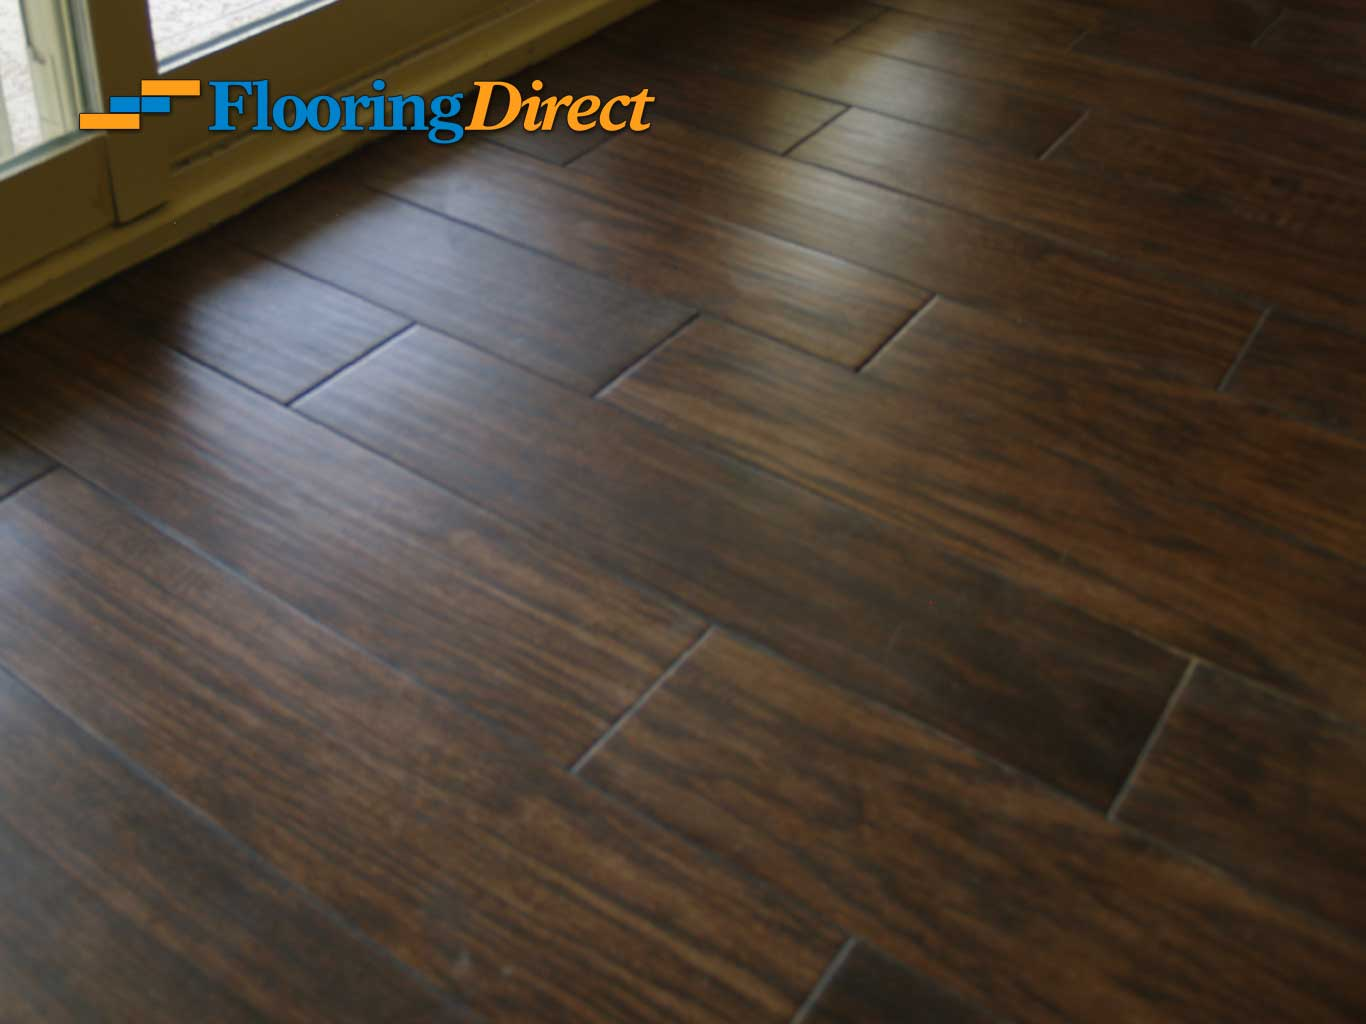 Wood Look Tile Flooring Serving All Of Dfw Flooring Direct